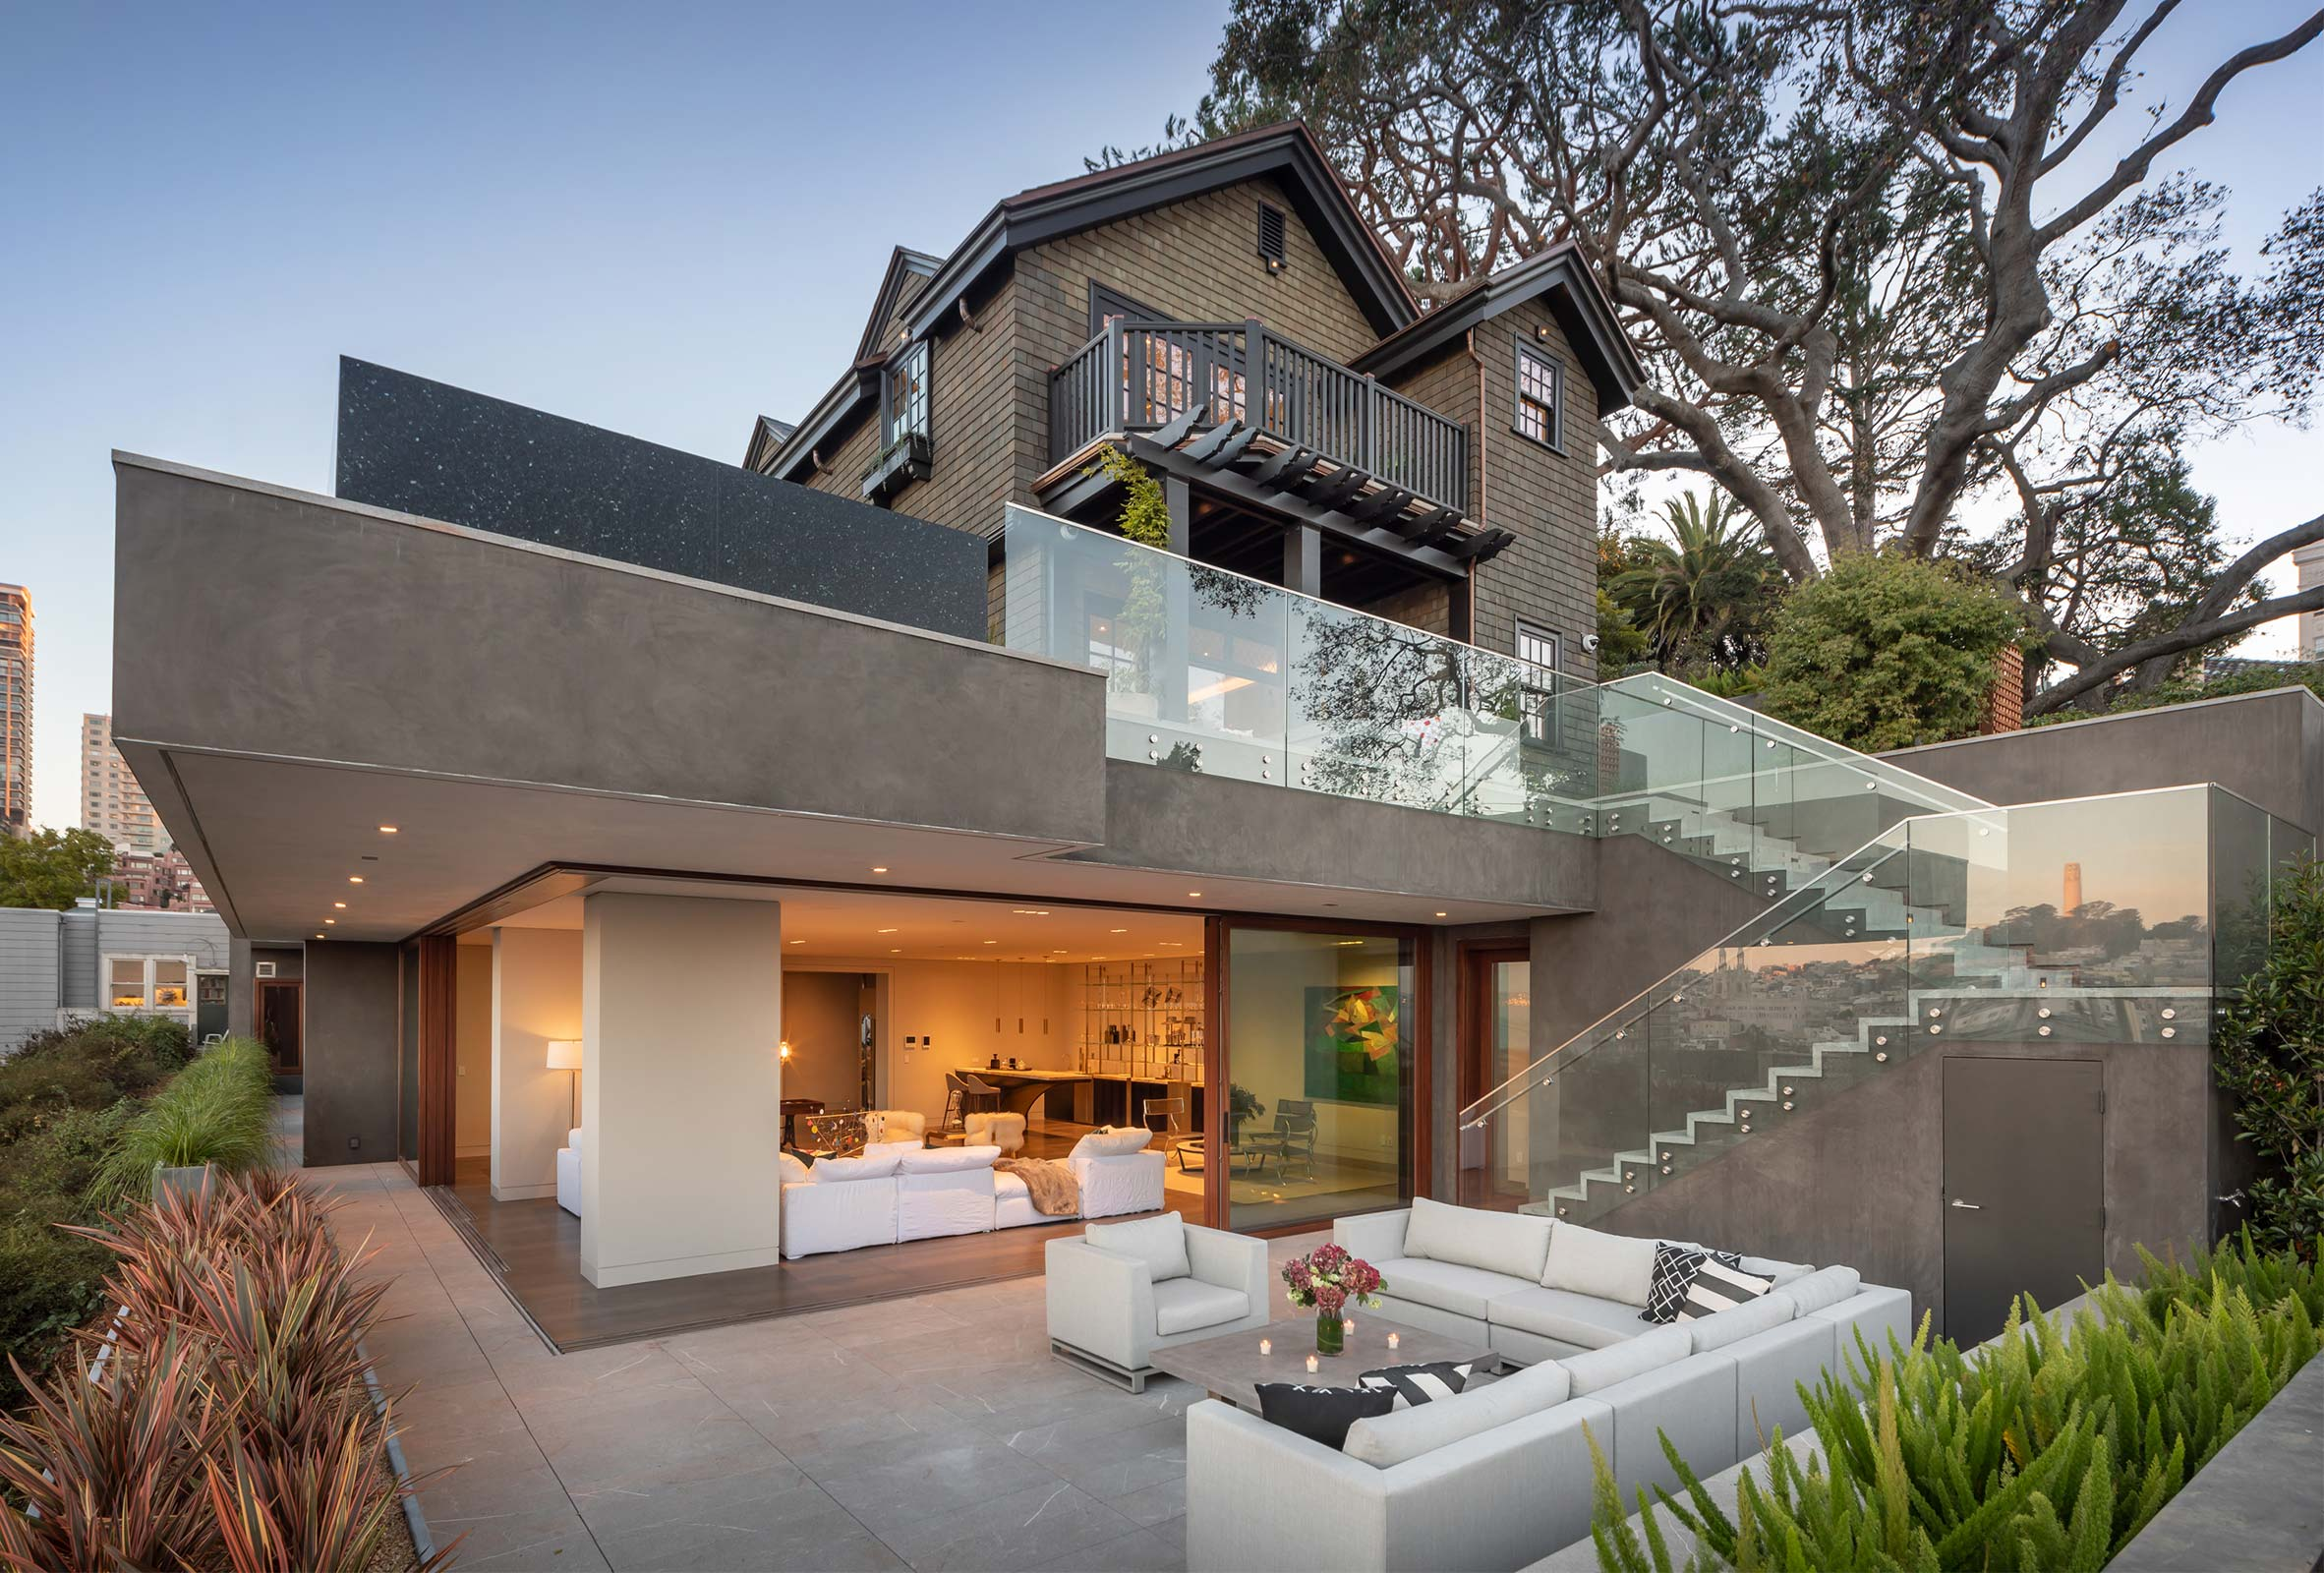 Residence 950 Exterior with Cantilevered Pool and Deck Area in San Francisco